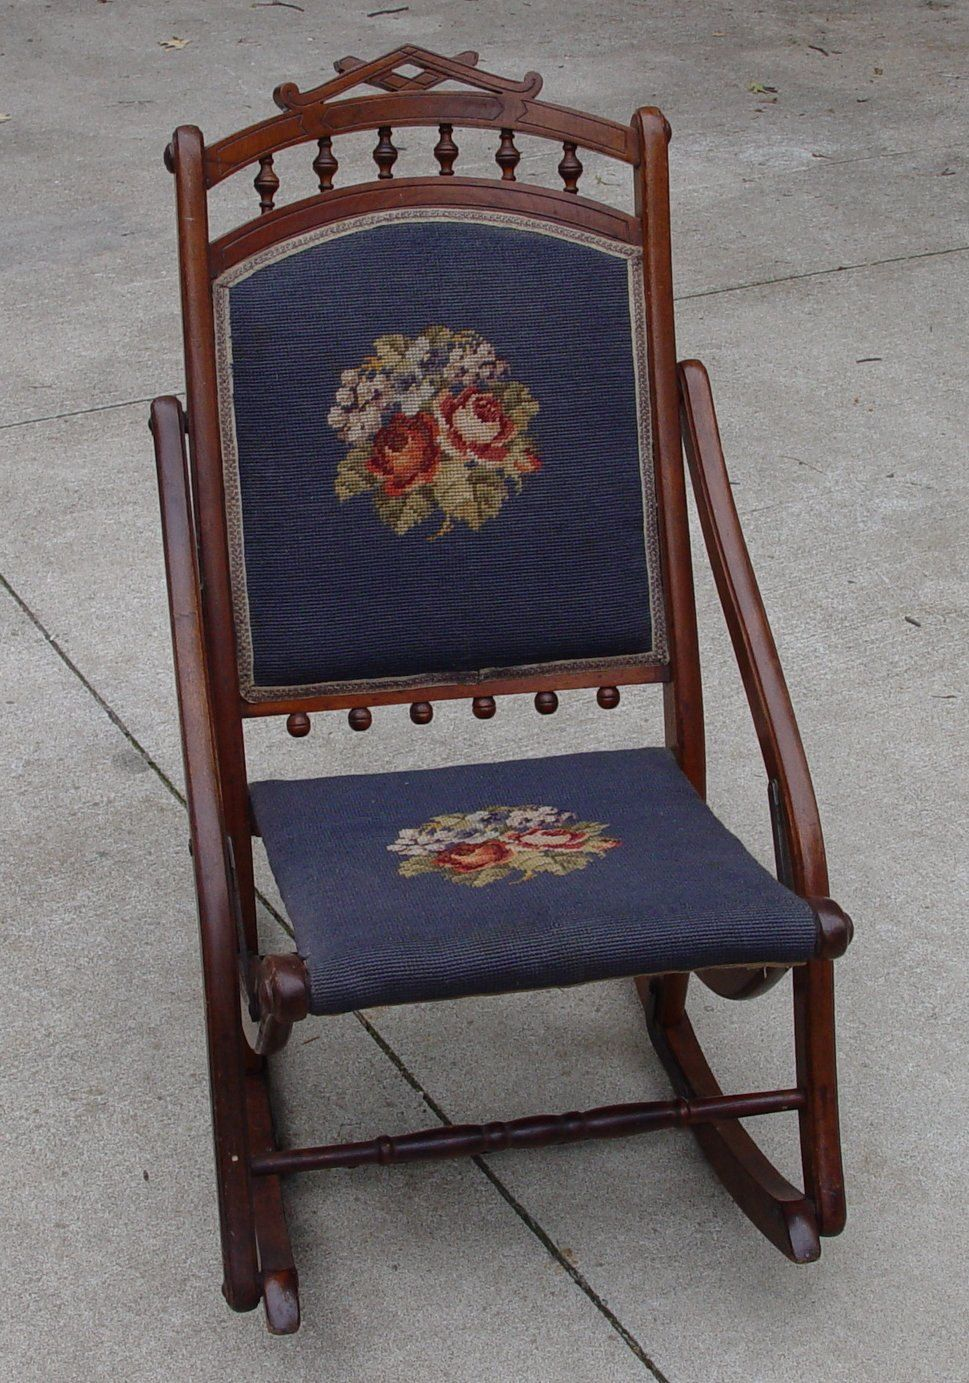 Antique sewing rocking chair - Antique Sewing Rocker Rocking Chair Needlepoint Back And Seat Original Condition Furniture